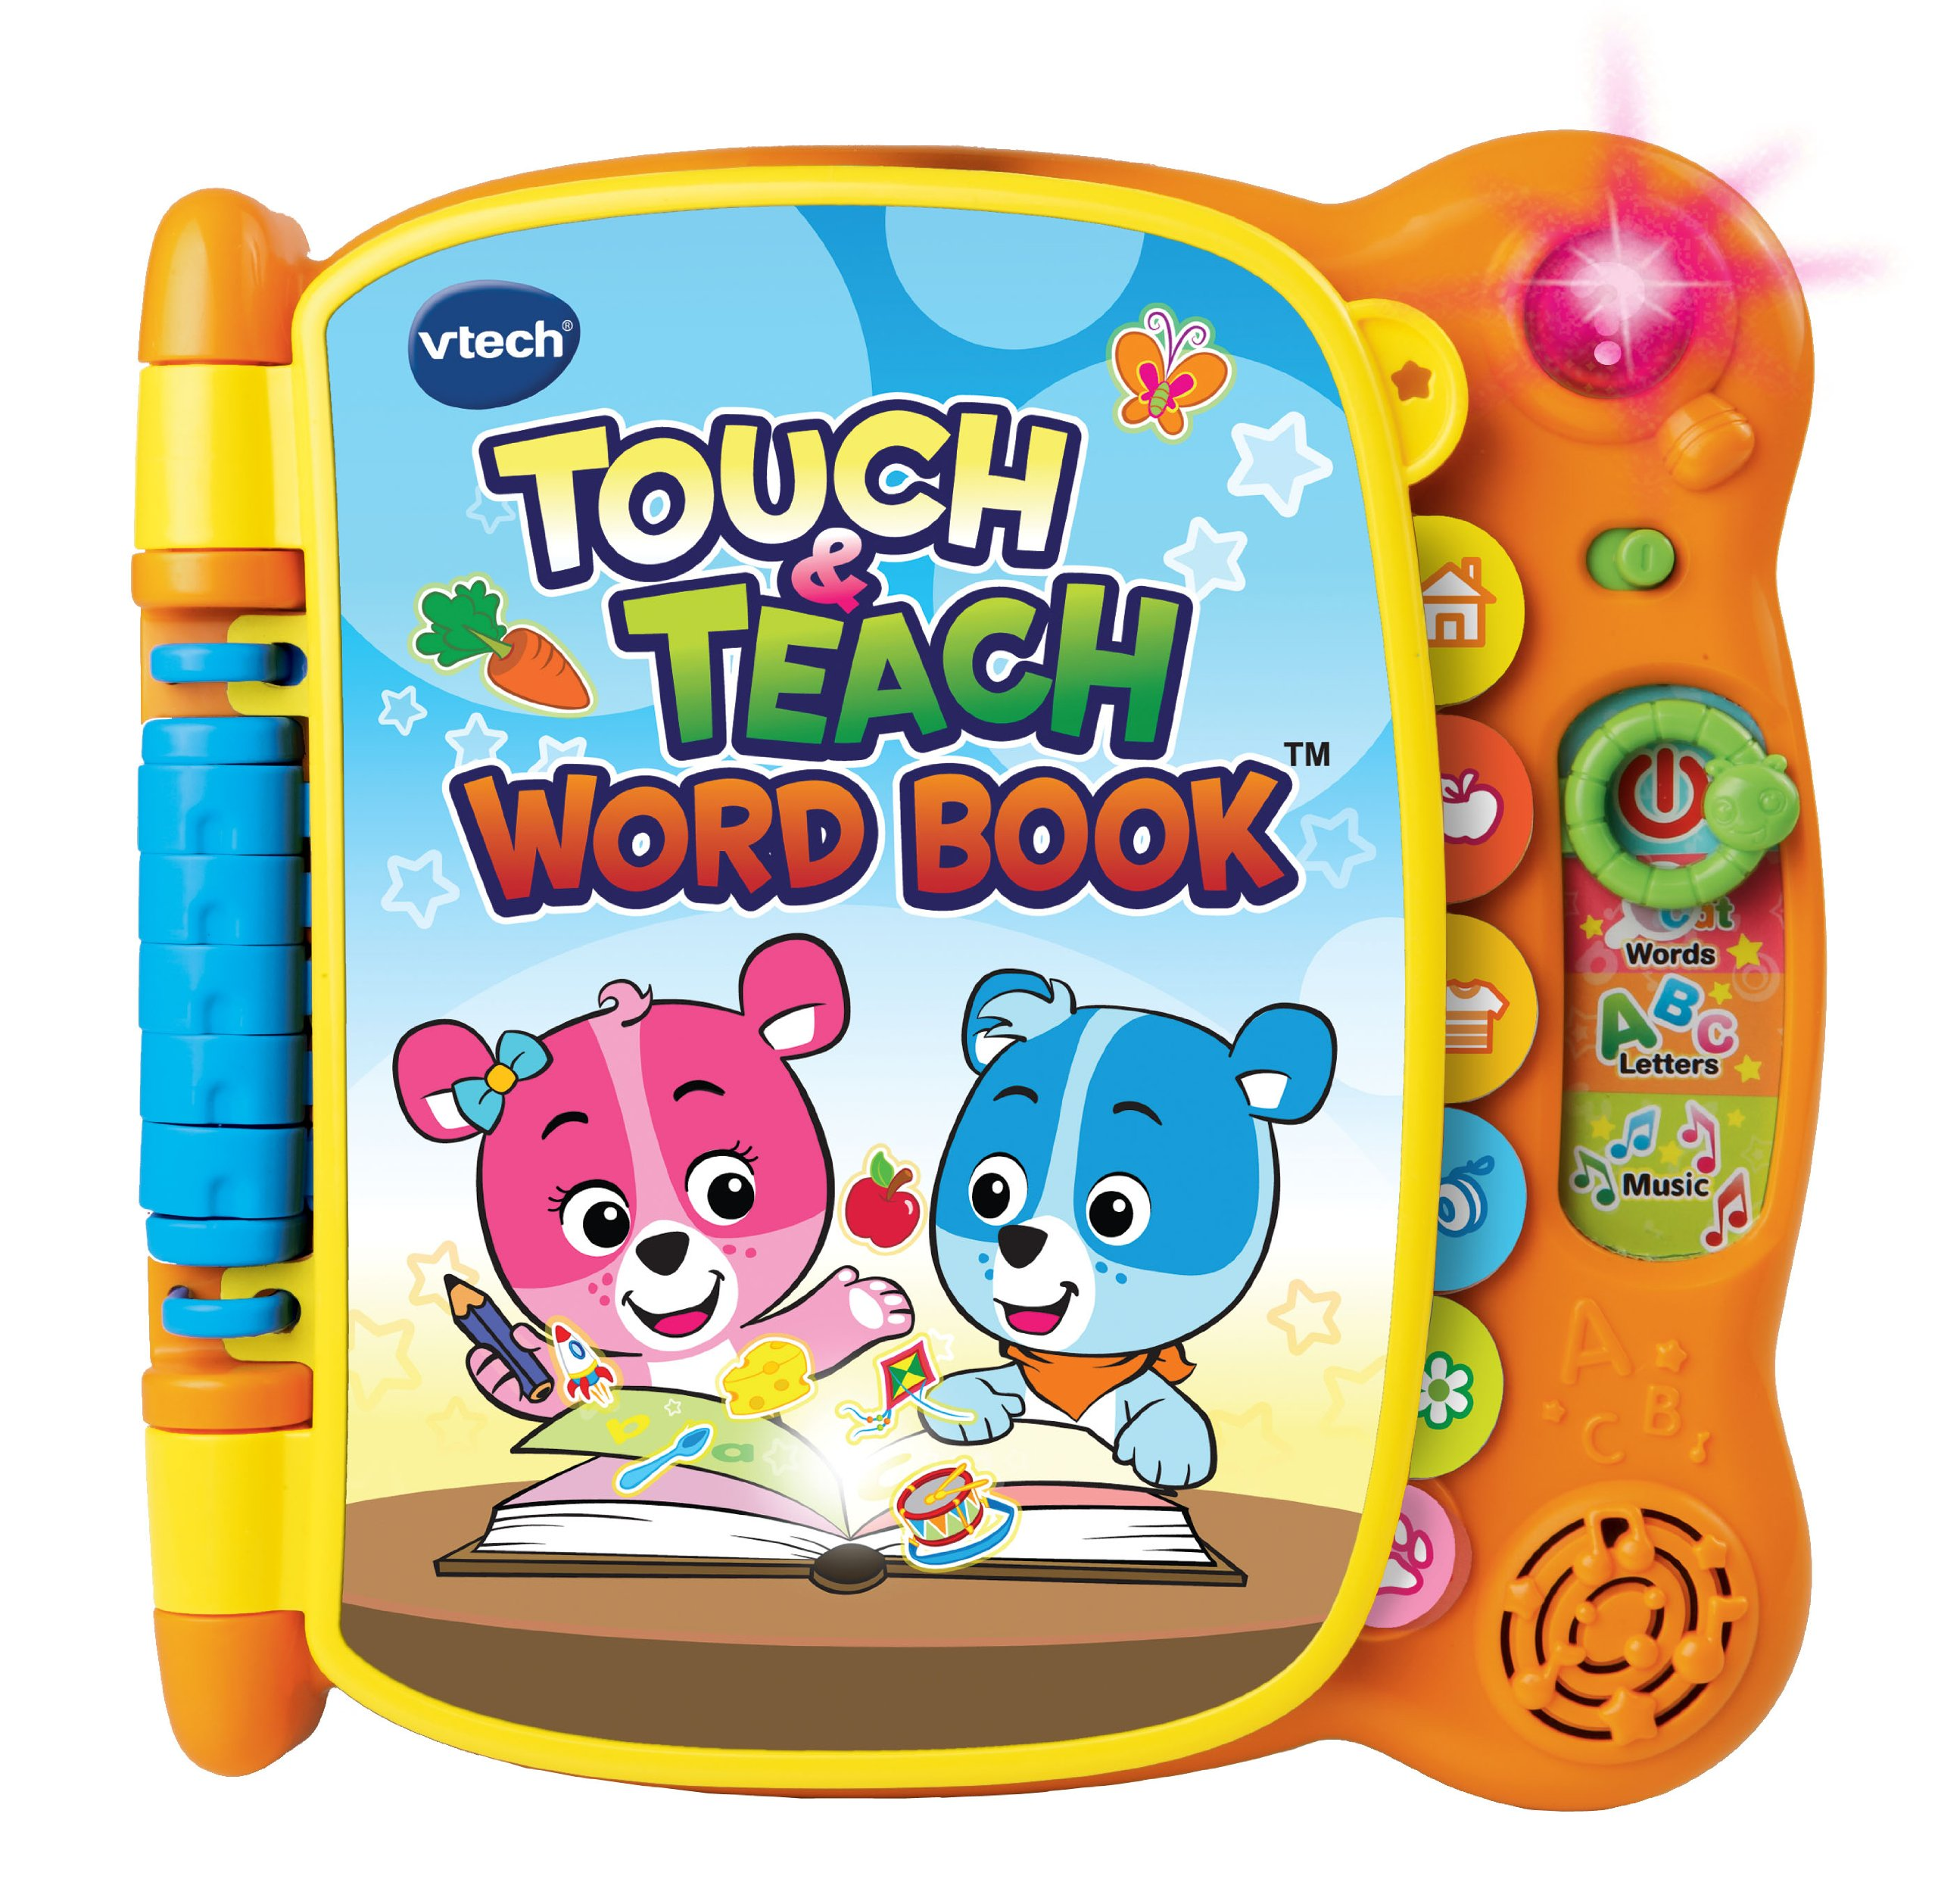 VTech Learning Toys Touch and Teach Word Book Interactive Baby